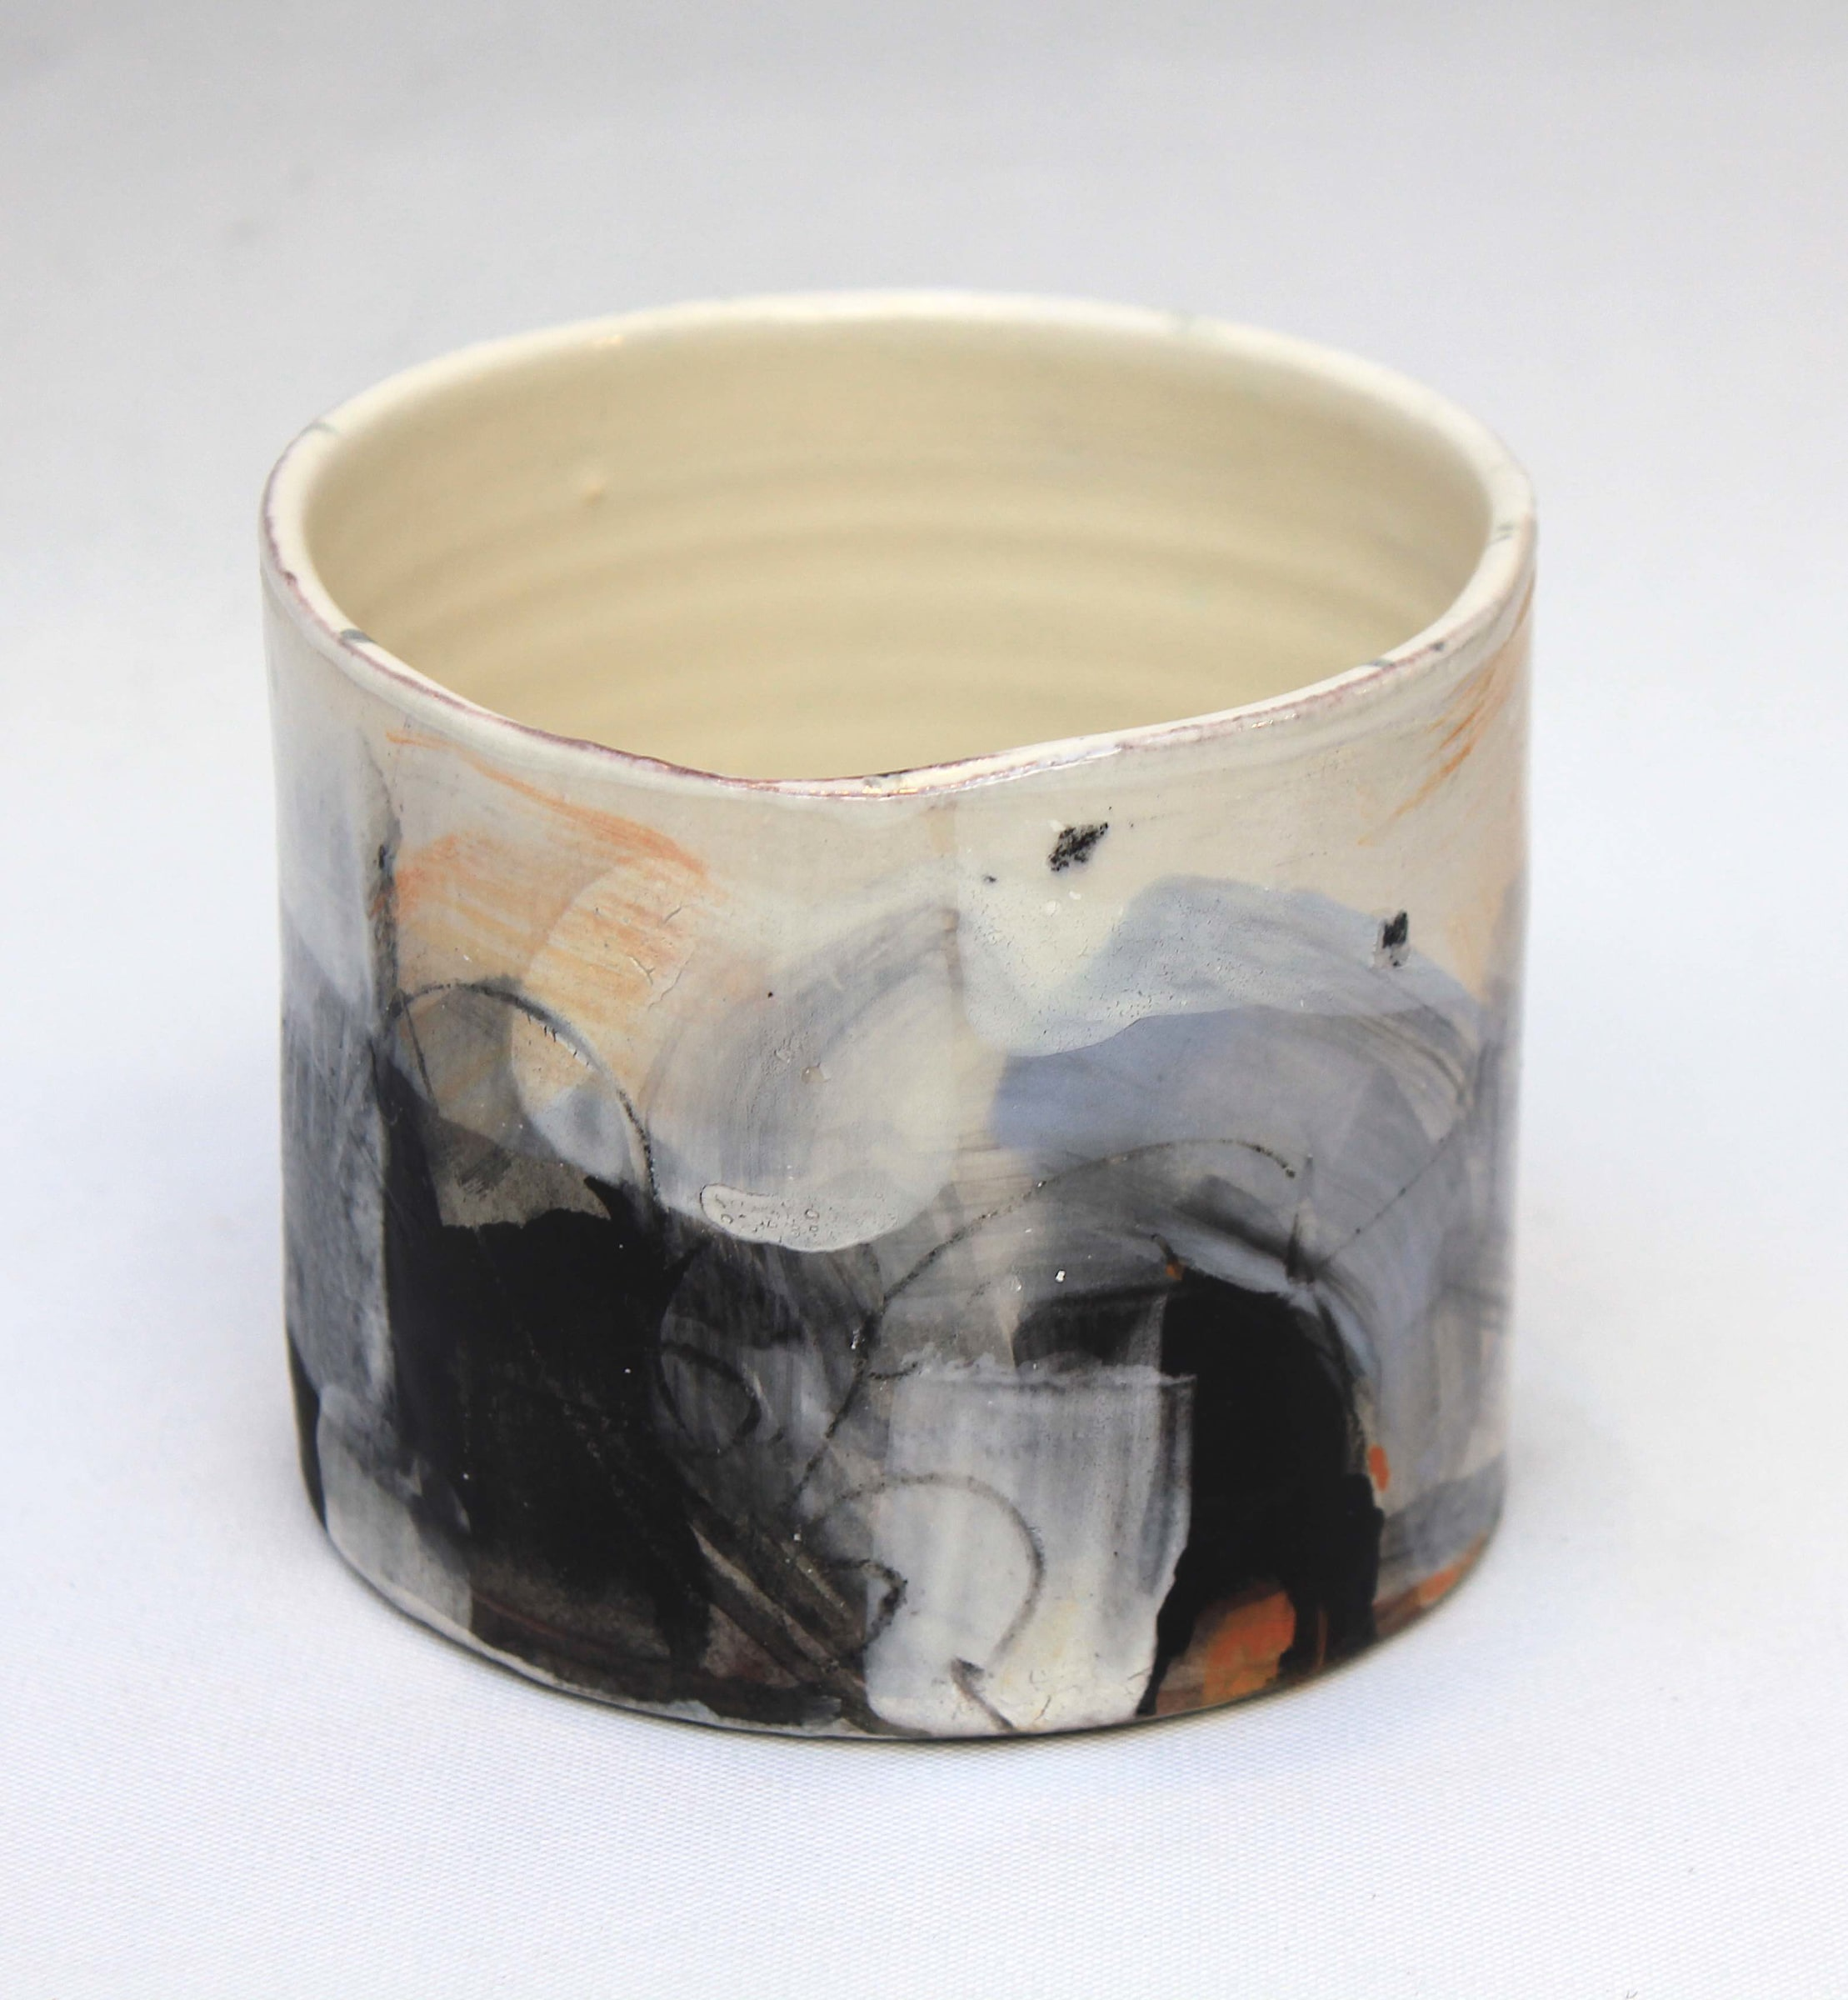 """<span class=""""link fancybox-details-link""""><a href=""""/artists/34-barry-stedman/works/4154-barry-stedman-thrown-vessel-dark-shore-series-2017/"""">View Detail Page</a></span><div class=""""artist""""><strong>Barry Stedman</strong></div> b. 1965 <div class=""""title""""><em>Thrown VEssel 'Dark Shore' Series</em>, 2017</div> <div class=""""signed_and_dated"""">signed by artist</div> <div class=""""medium"""">thrown and altered earthenware, decorated with slips</div> <div class=""""dimensions"""">8 x 9 cm<br /> 3 1/8 x 3 1/2 inches</div><div class=""""copyright_line"""">OwnArt: £ 14.50 x 10 Months, 0% APR</div>"""